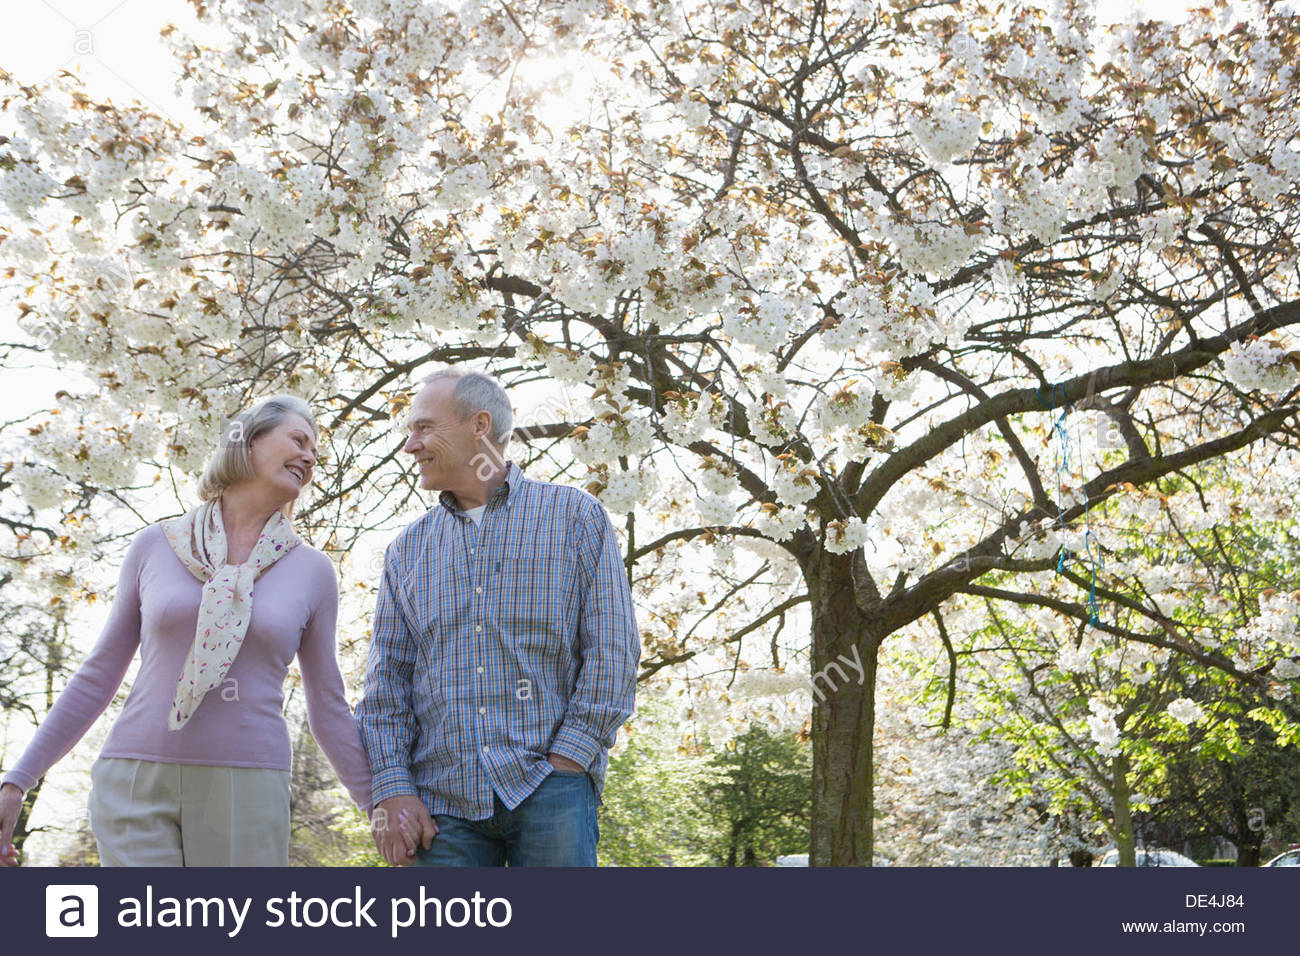 Senior couple holding hands under blooming tree - Stock Image